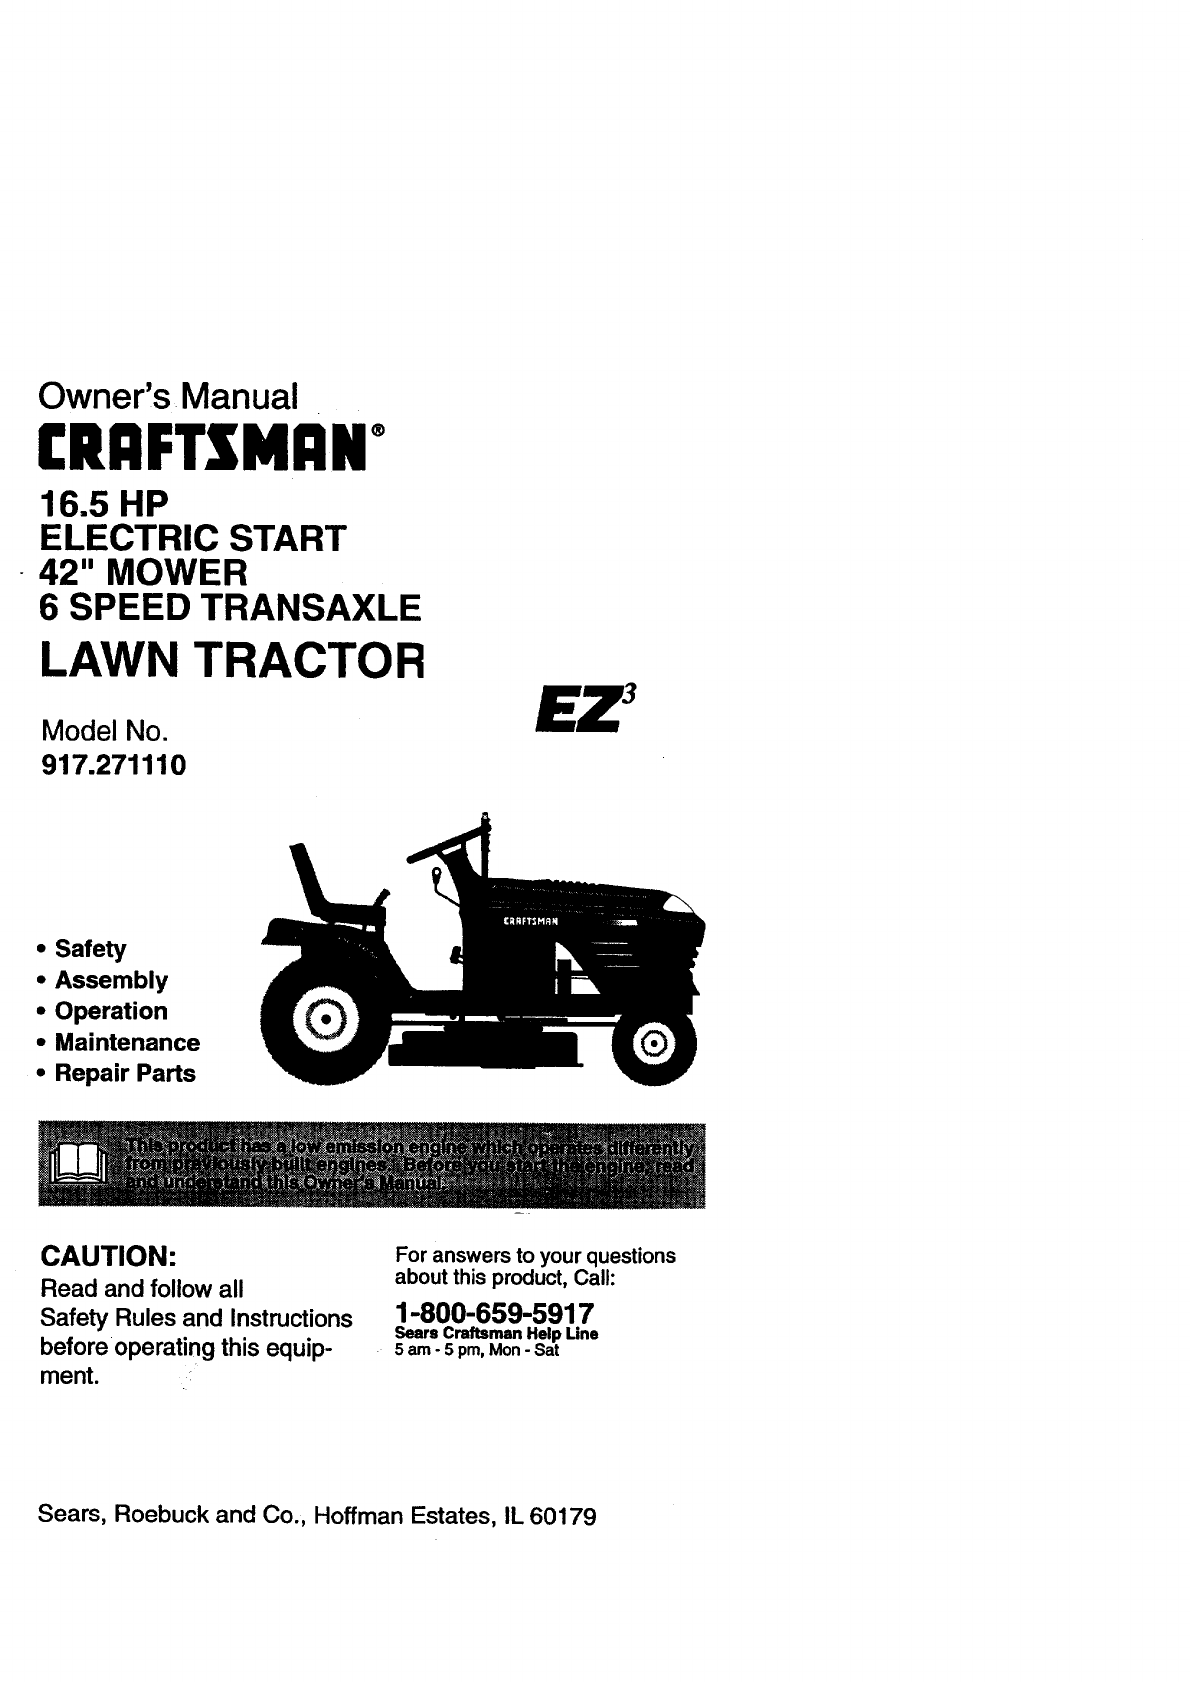 7a737f57 67af 49c5 a541 079cbf11b29b bg1 craftsman lawn mower 917 271110 user guide manualsonline com wiring diagram for craftsman lt1000 at readyjetset.co